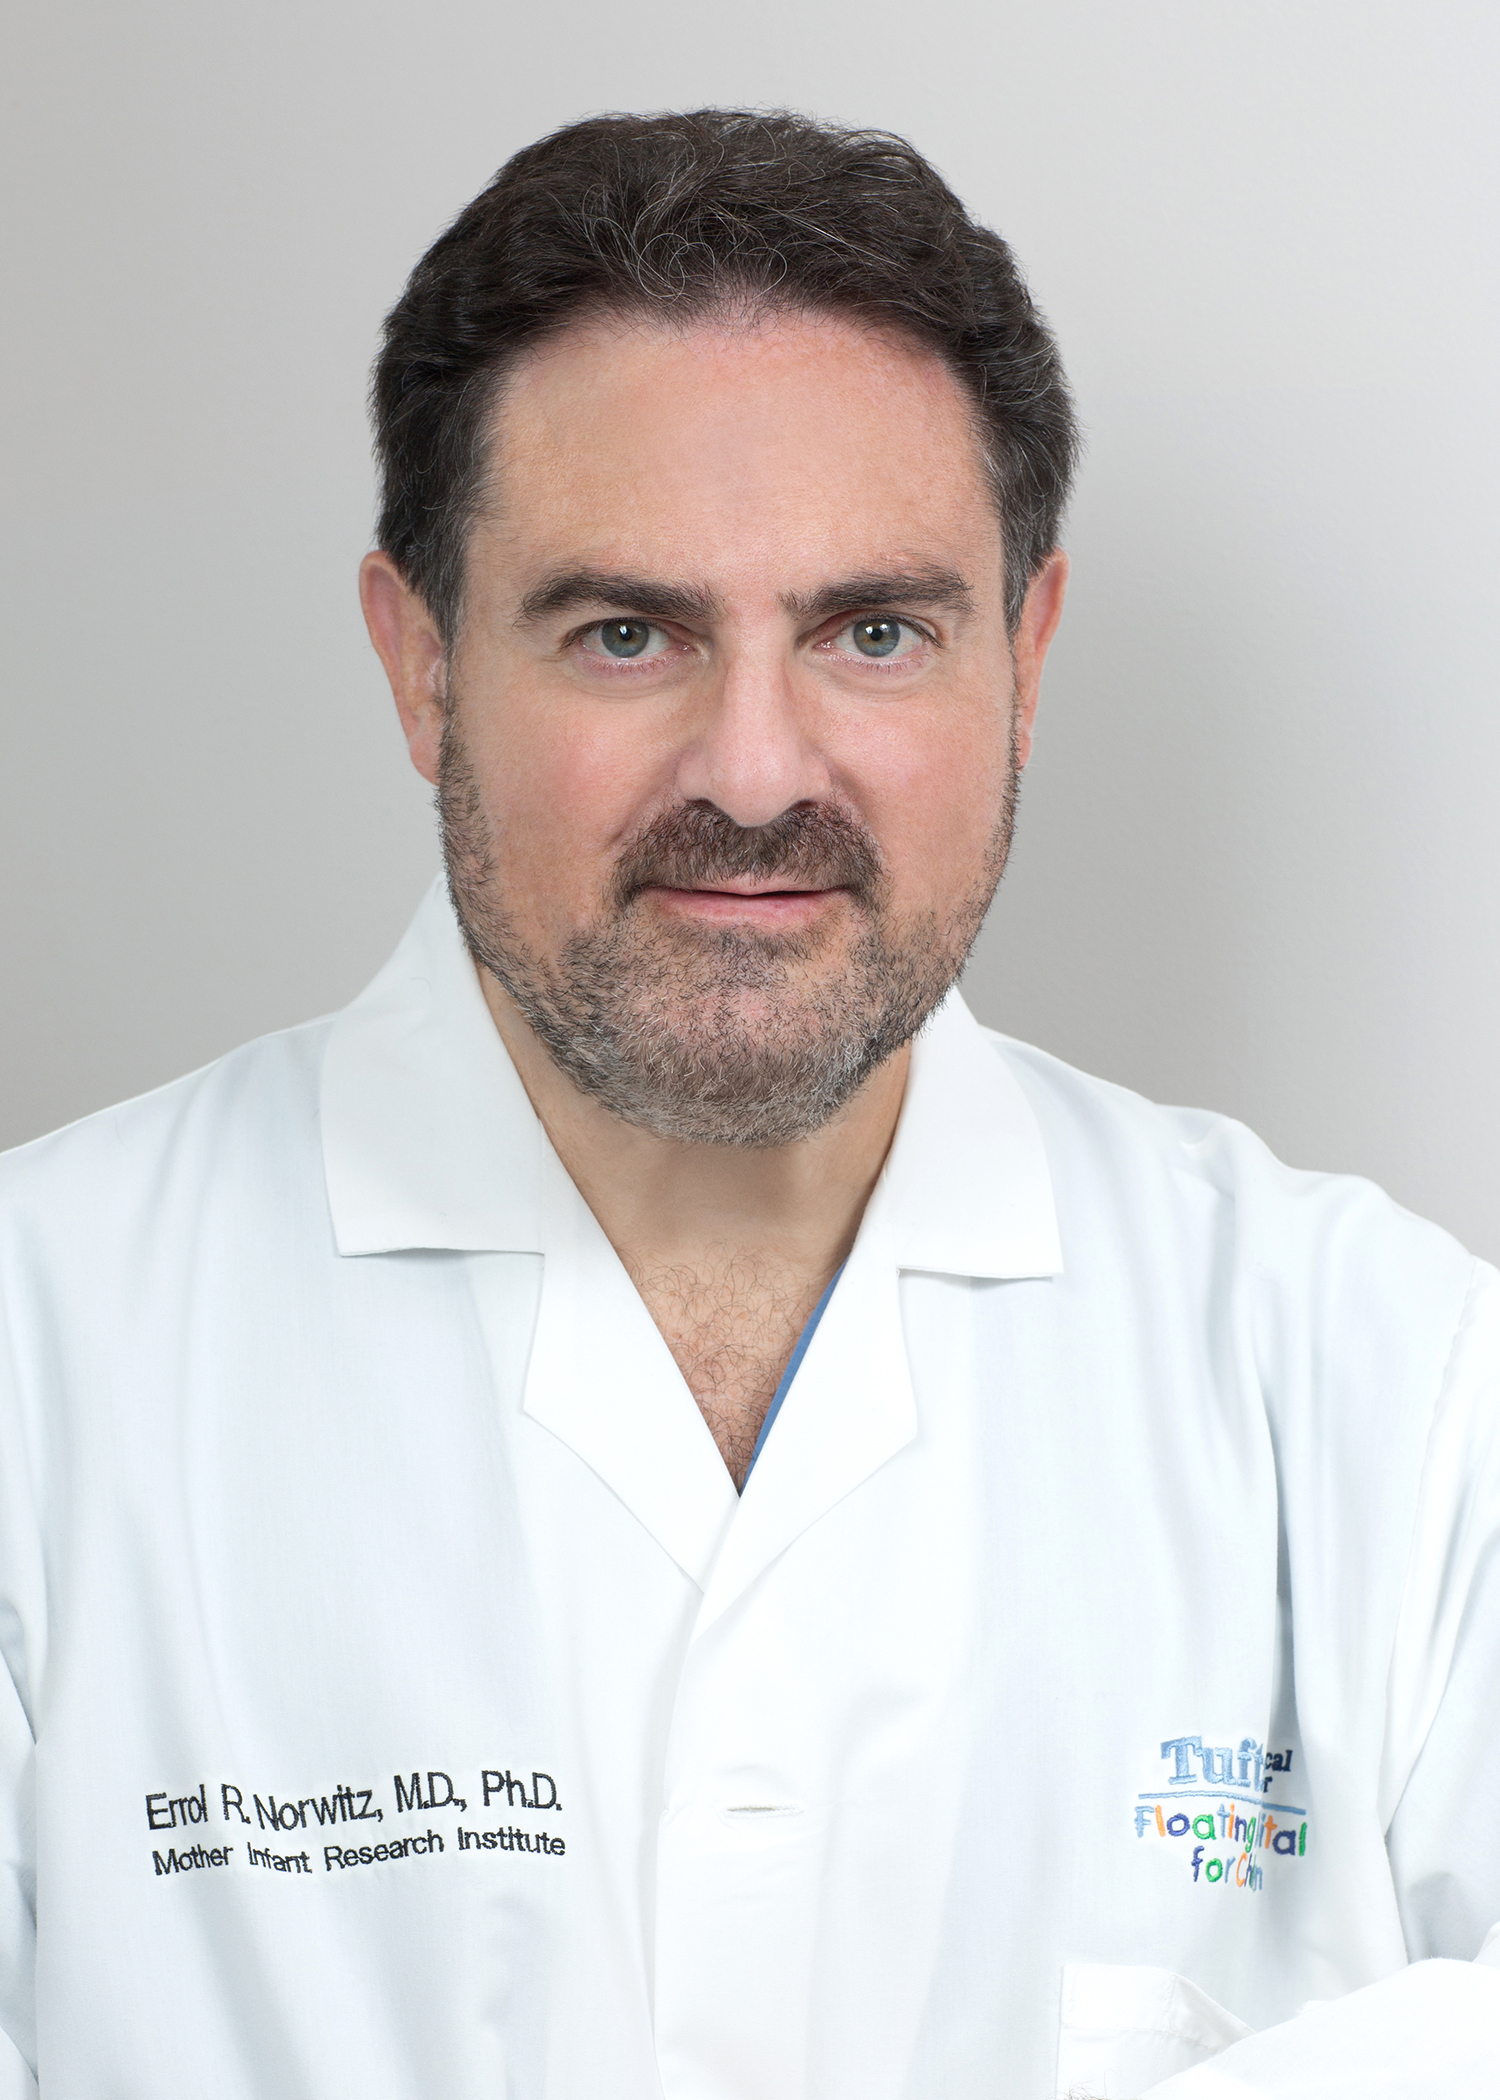 Errol Norwitz, MD, PhD